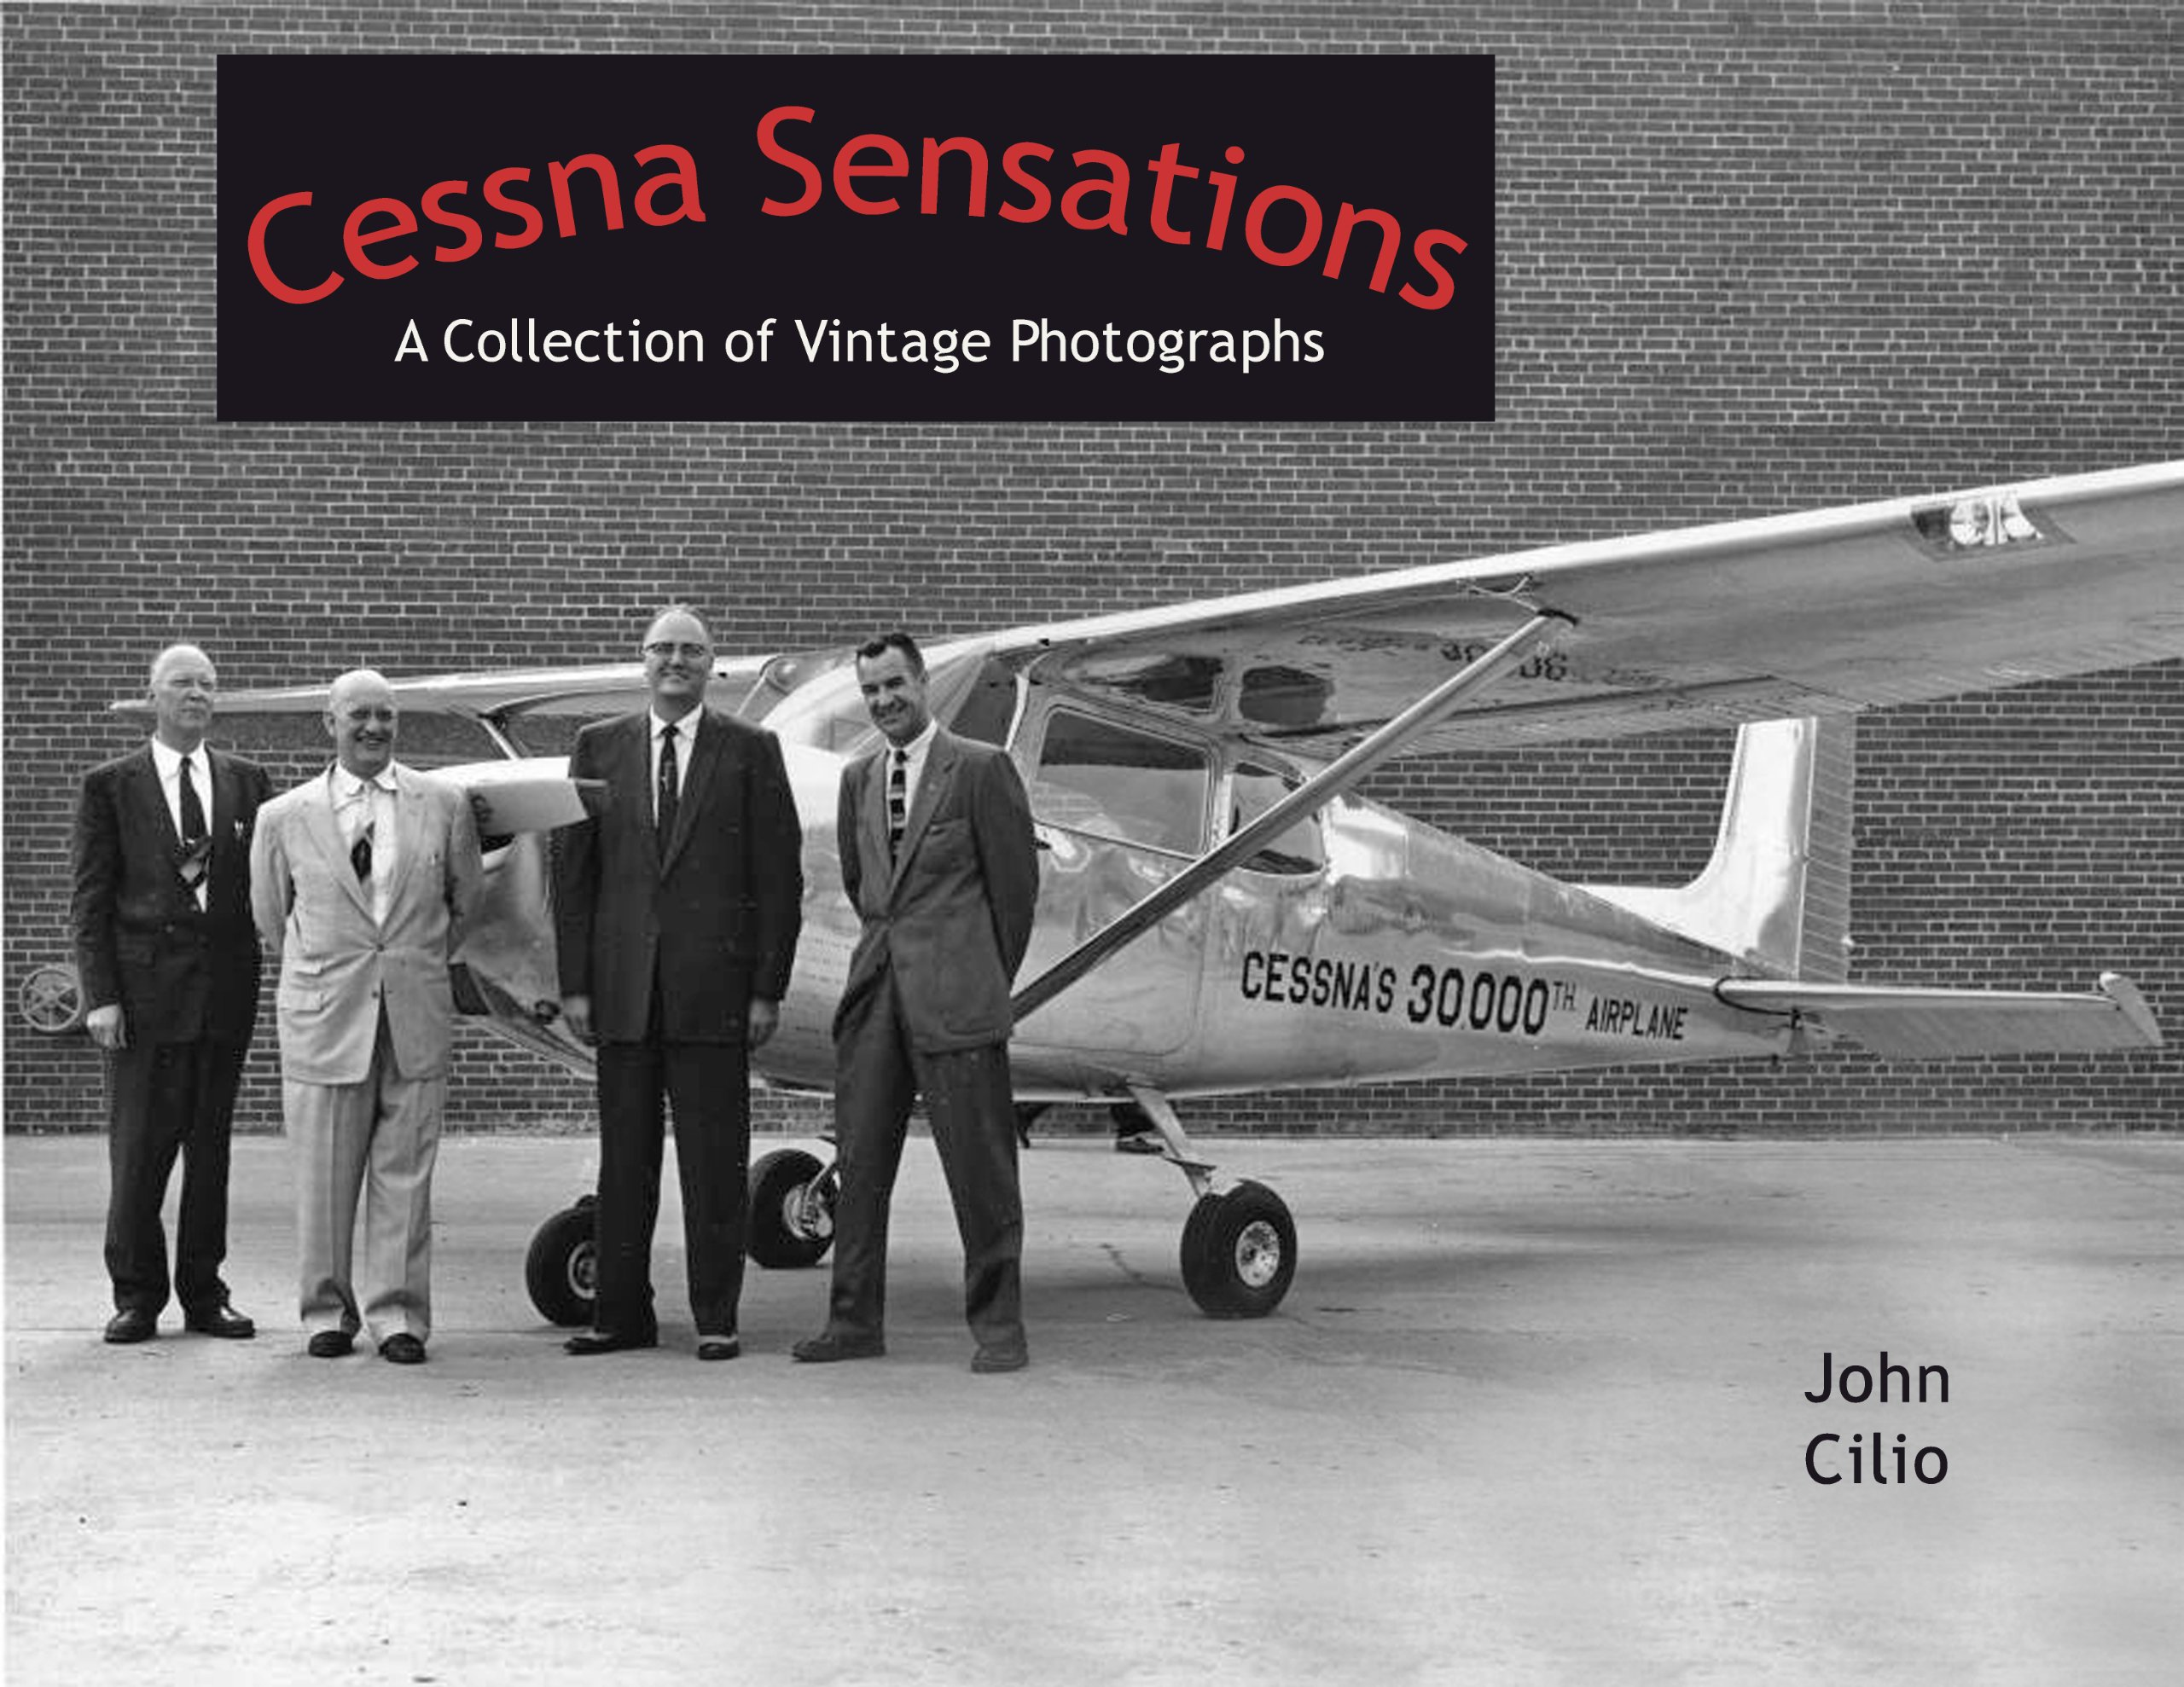 Cessna Sensations: A Collection of Vintage Photographs: John Cilio, Herb  Hill, Lisa Maxwell: 9780982772805: Amazon.com: Books